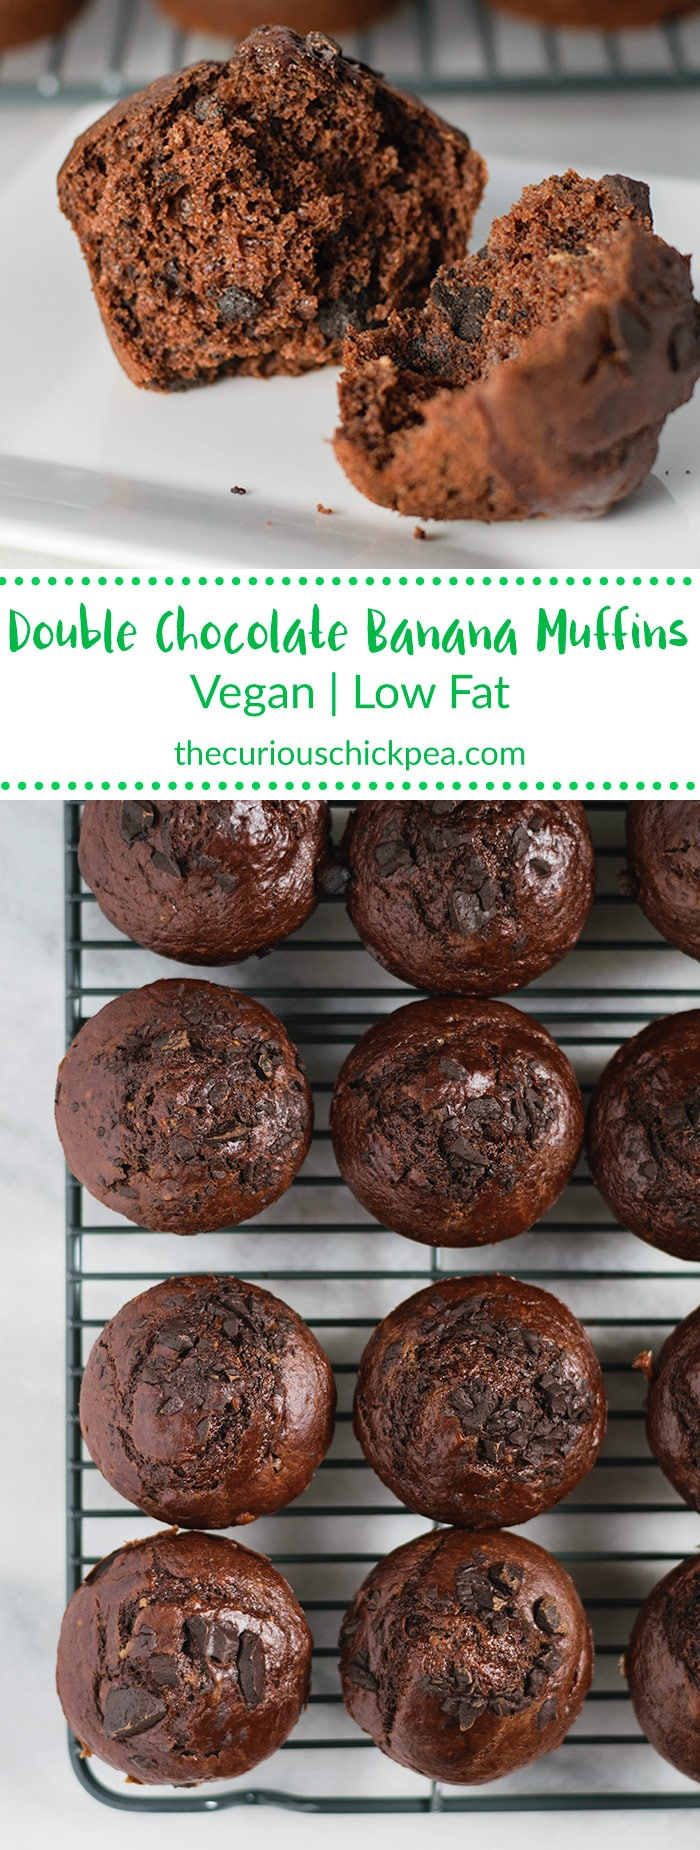 Double Chocolate Banana Bread Muffins | A vegan, ultra chocolatey, low fat, rich and indulgent tasting treat. They're quick and easy to whip up and freeze wonderfully. | thecuriouschickpea.com #vegan #muffins #breakfast #chocolate